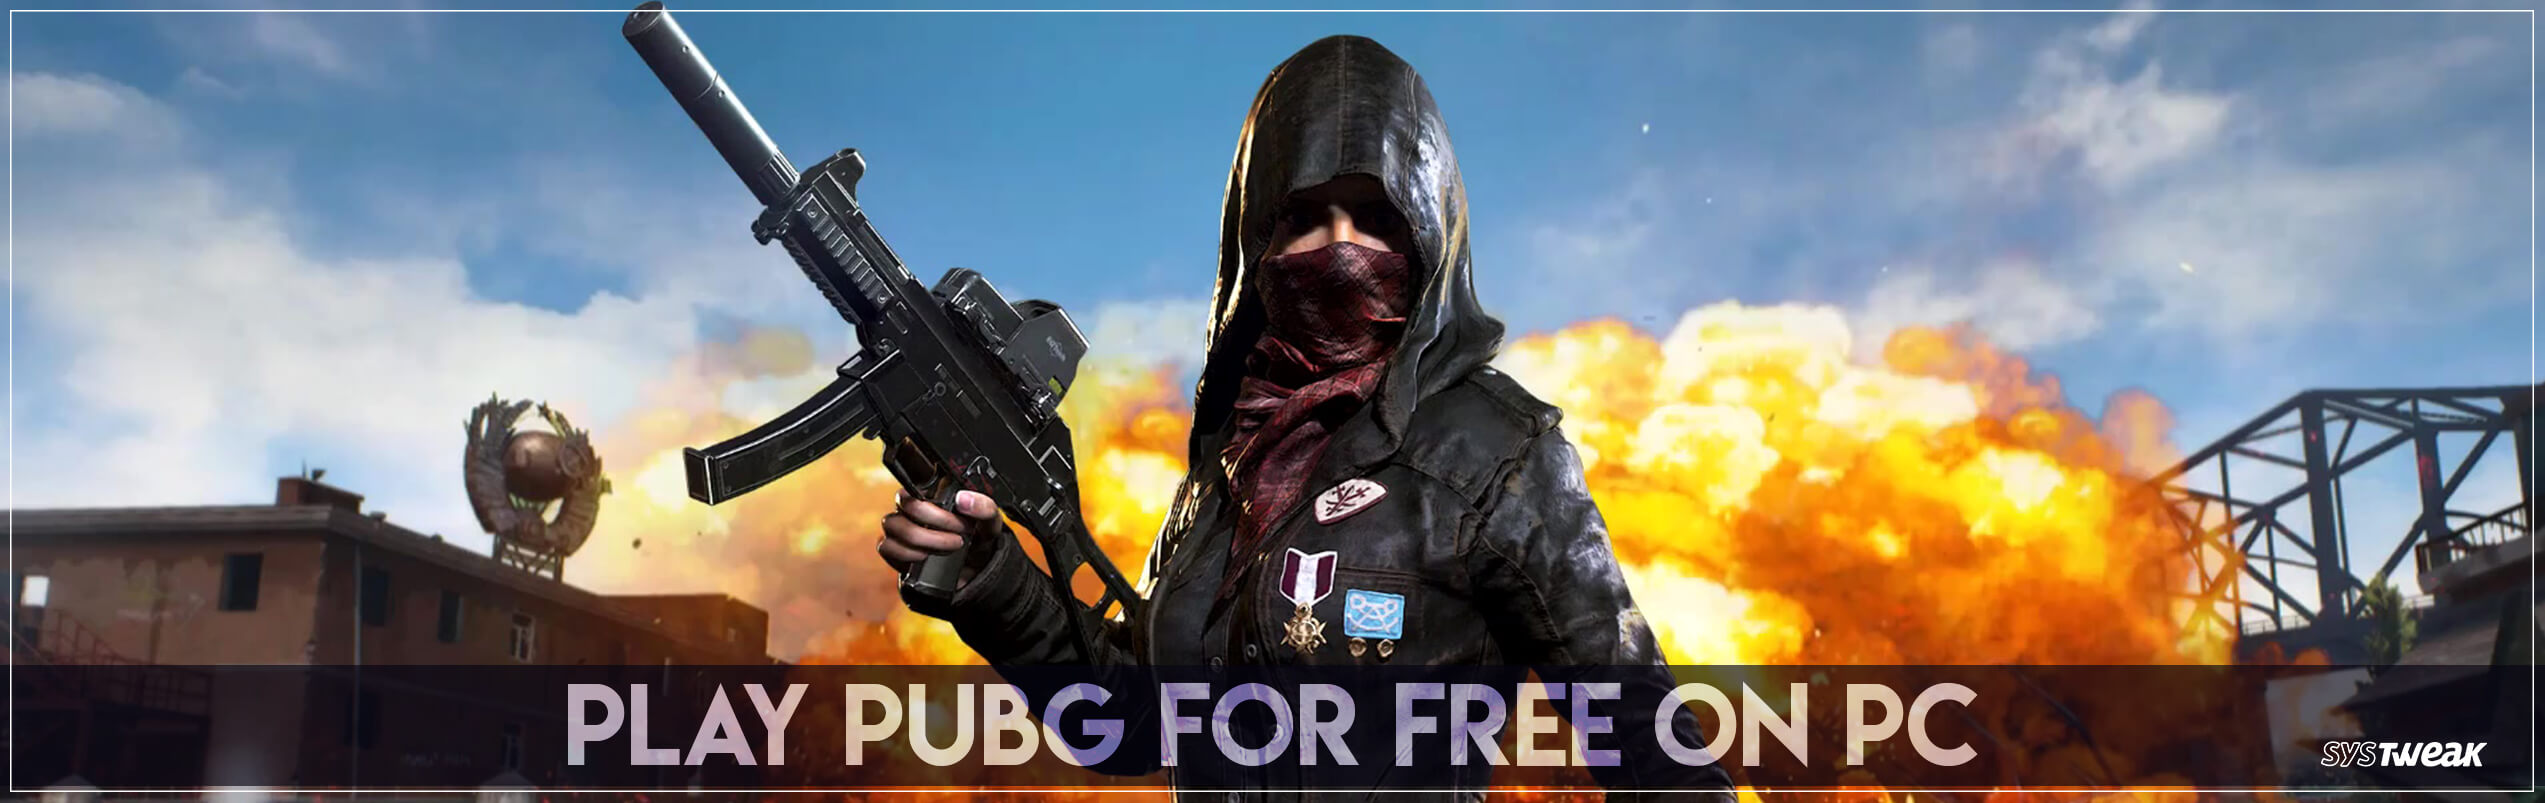 How To Play PUBG On PC For Free – [PUBG Mobile]